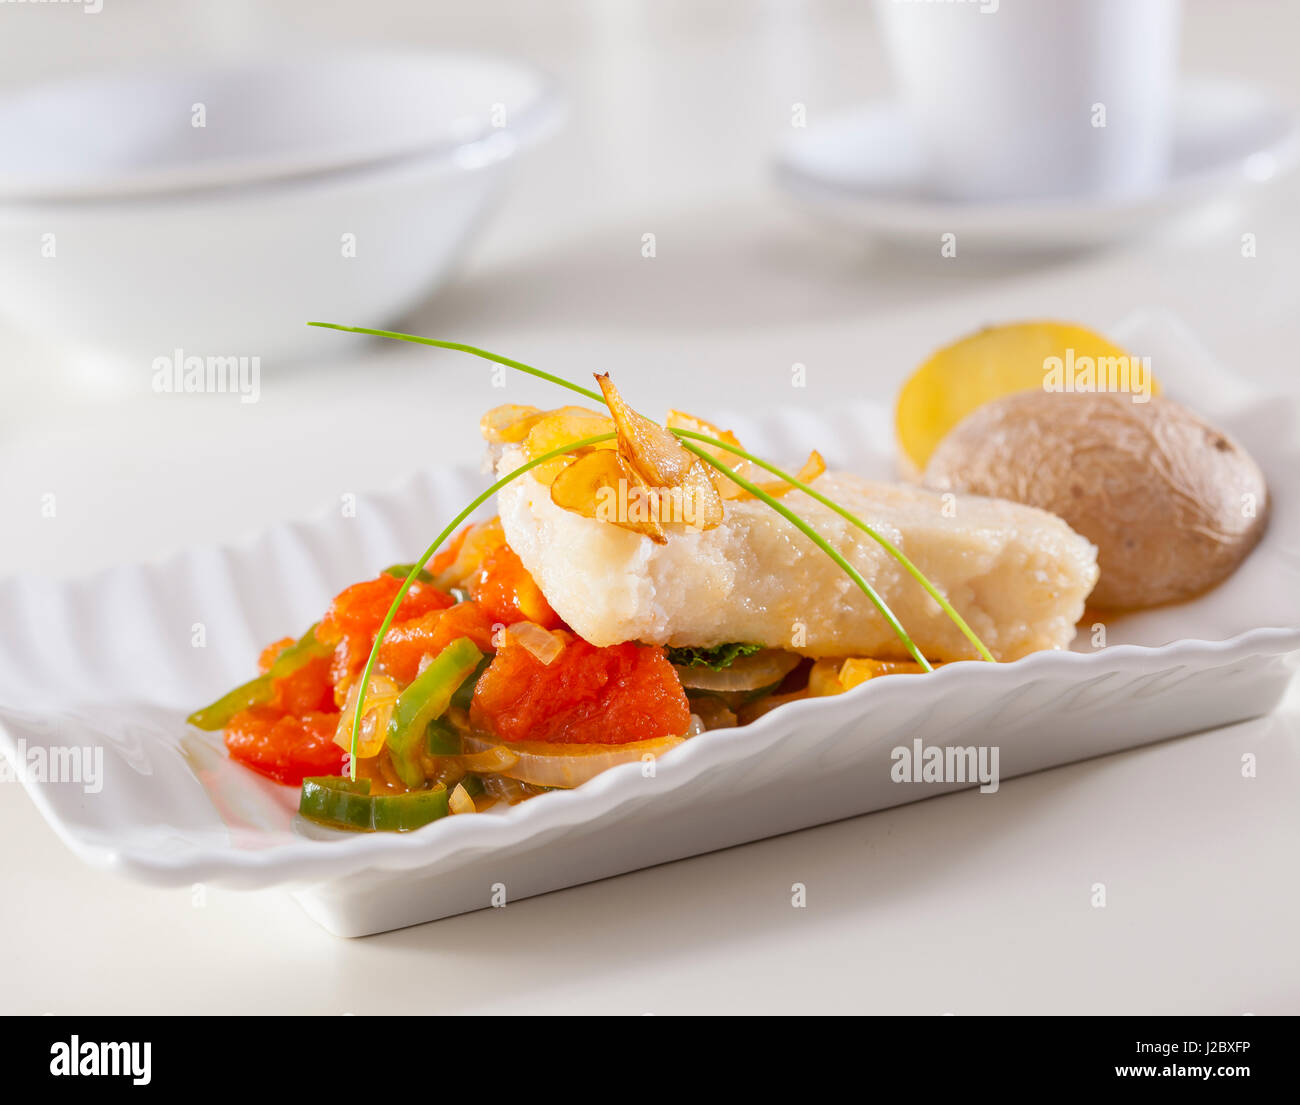 Grouper fillet served with fried garlic an vegetables. Stock Photo